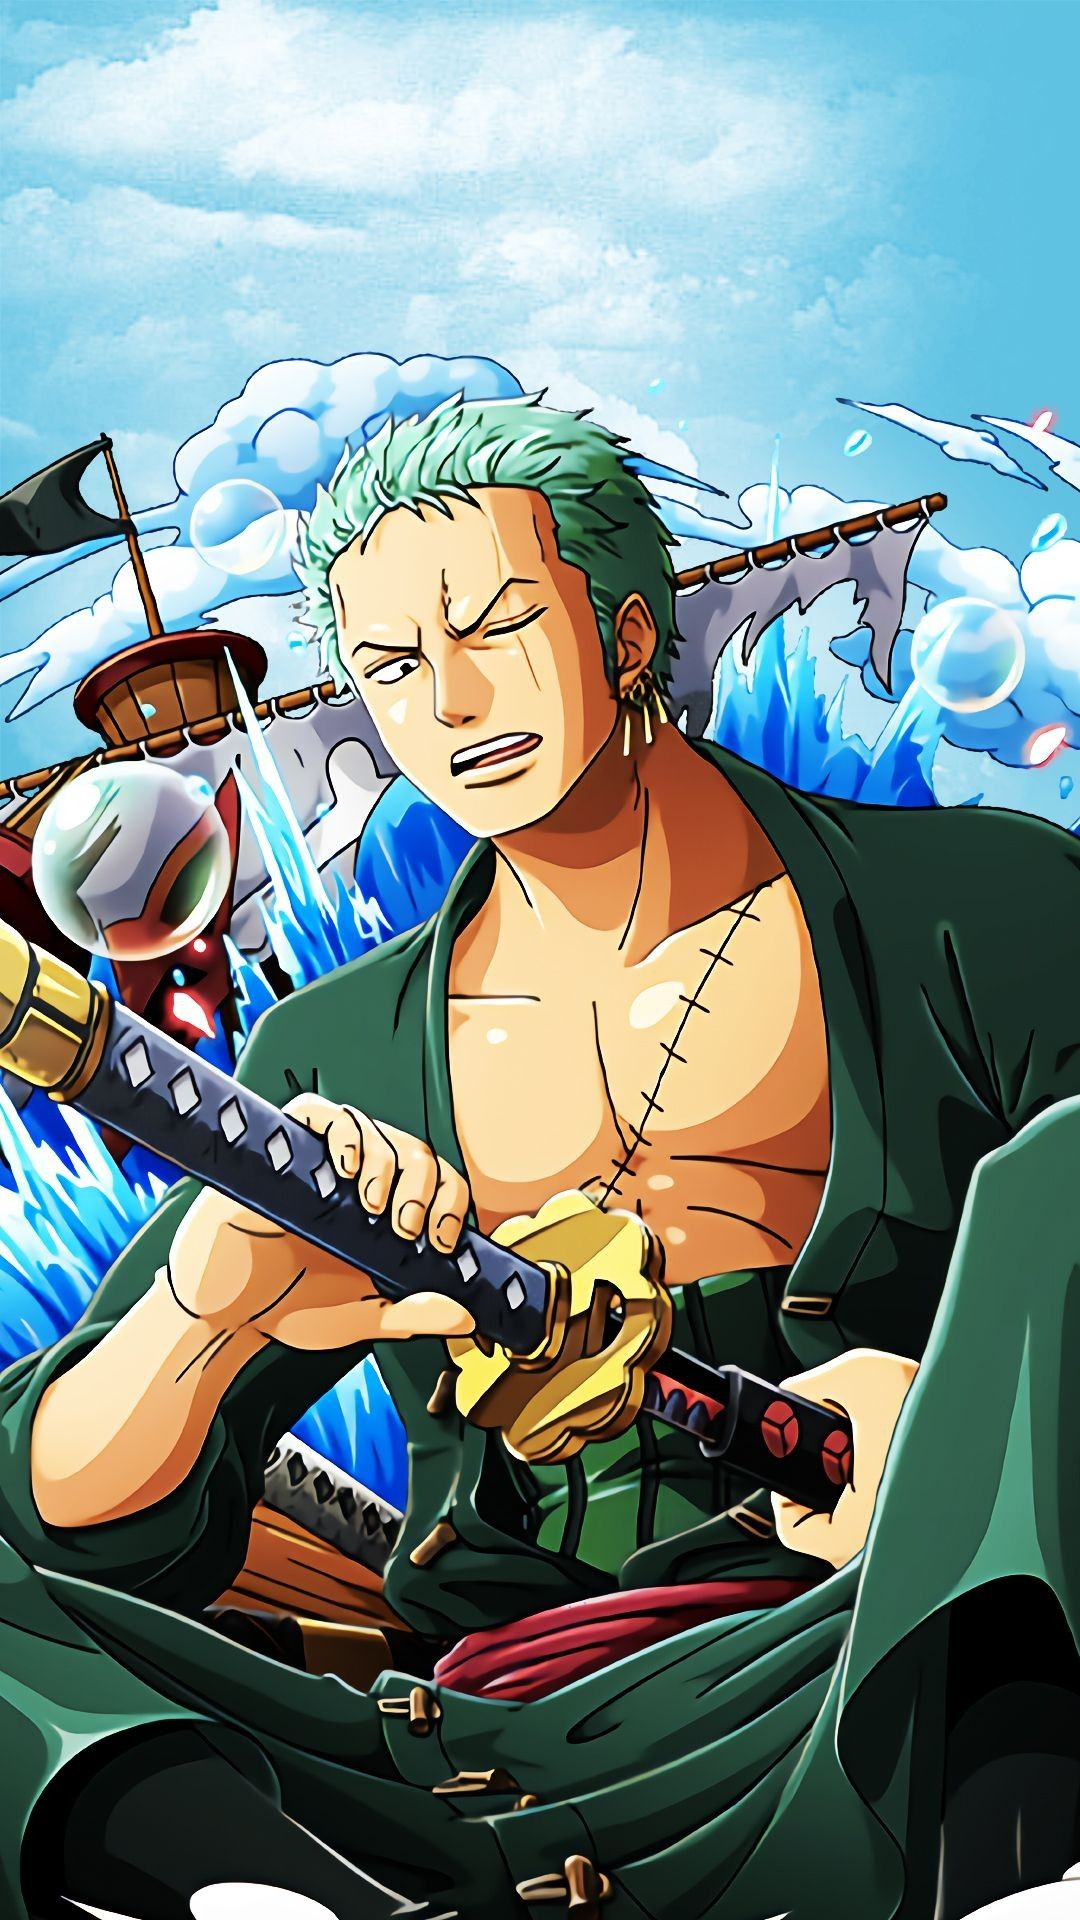 Iphone X Xr Xs 6 7 8 Plus Soft Tpu Rubber Case With Clear Back Roronoa Zoro Manga Anime One Piece One Piece Wallpaper Iphone Zoro One Piece